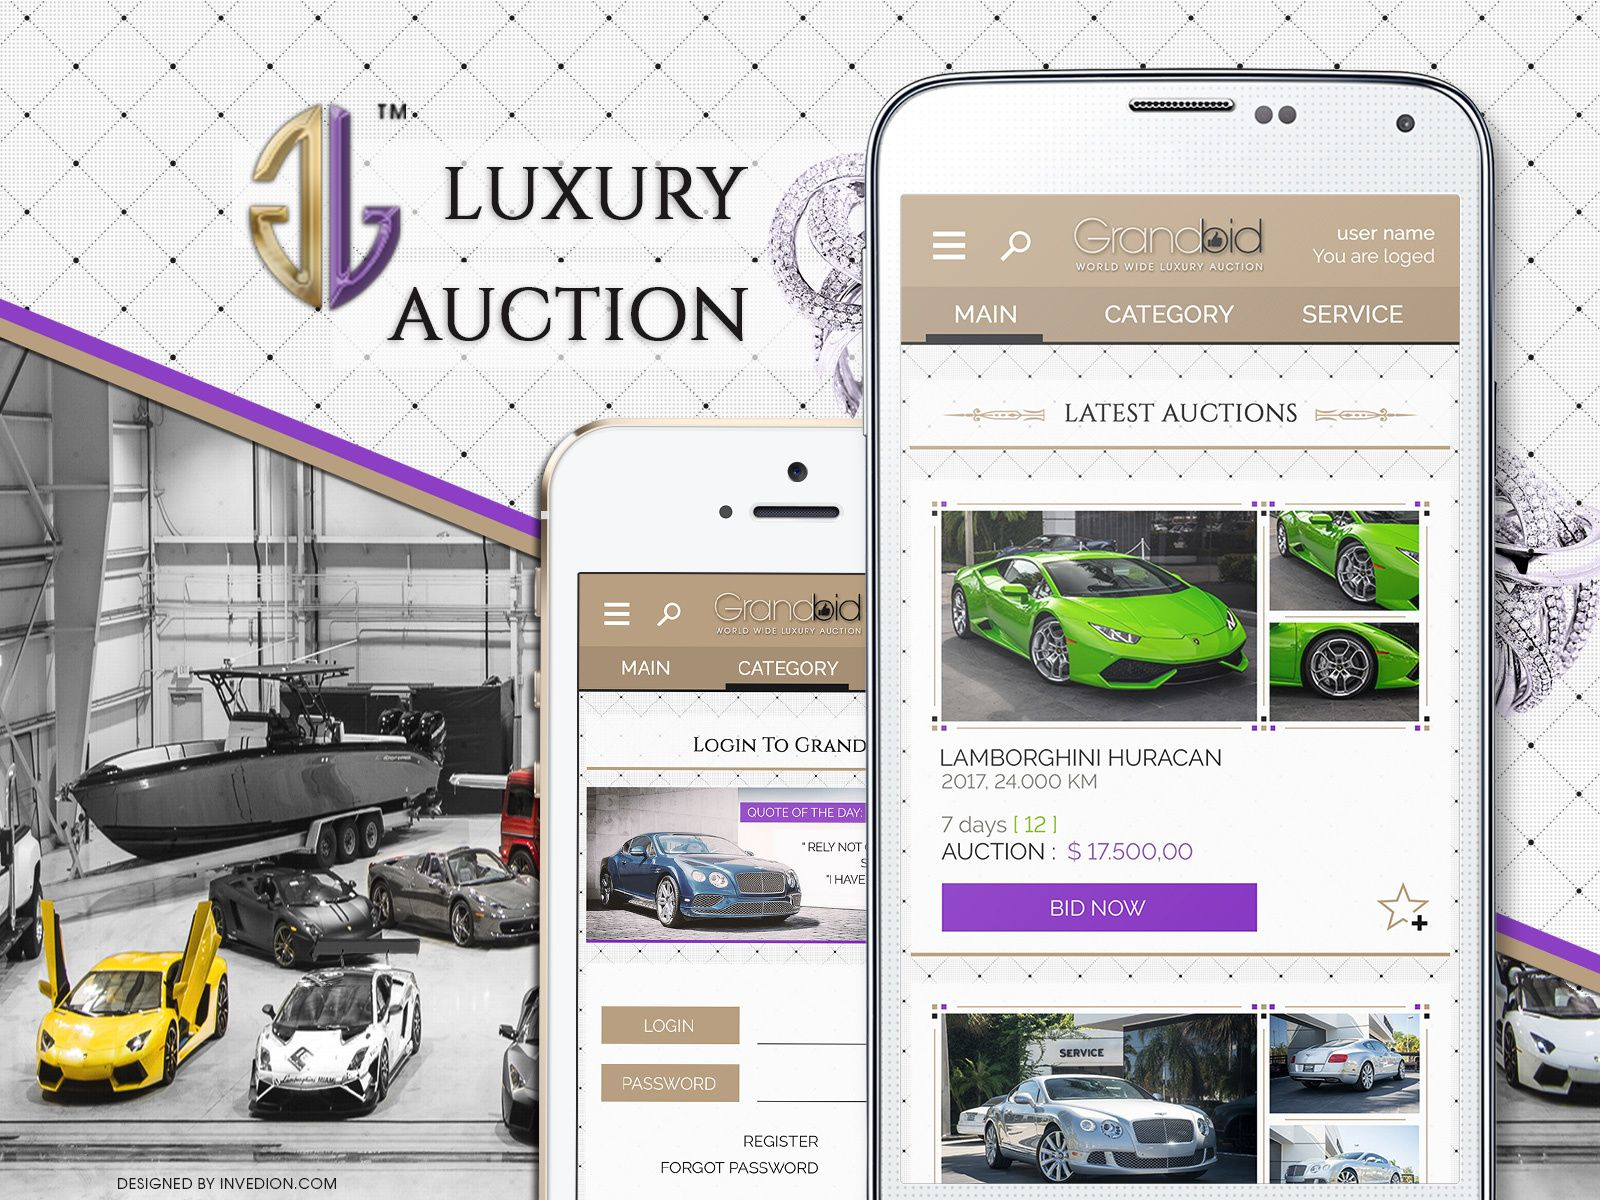 Internacional Luxury Auction Android And iOS Mobile App